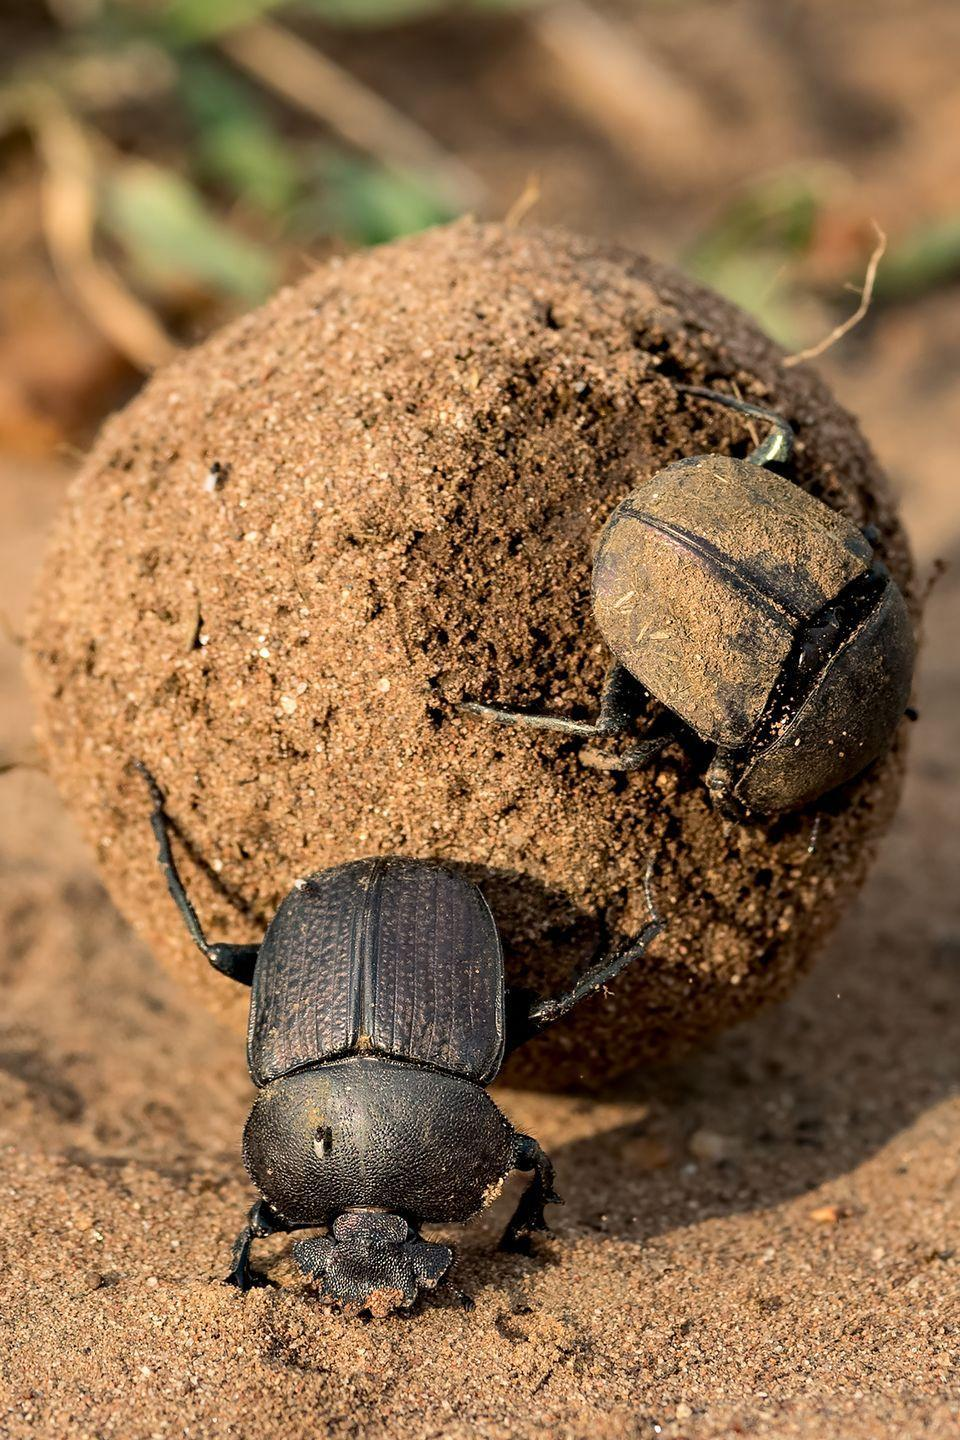 <p>The dung beetle has been deemed the strongest insect on Earth. They're able to push balls of fresh animal poop (hence their namesake) that weigh more than 200 times their body weight. Researchers documented one individual dung beetle that was pushing a ball that was 1,141 times his body weight, the equivalent of a 150-pound person moving a whopping 80 tons.</p>